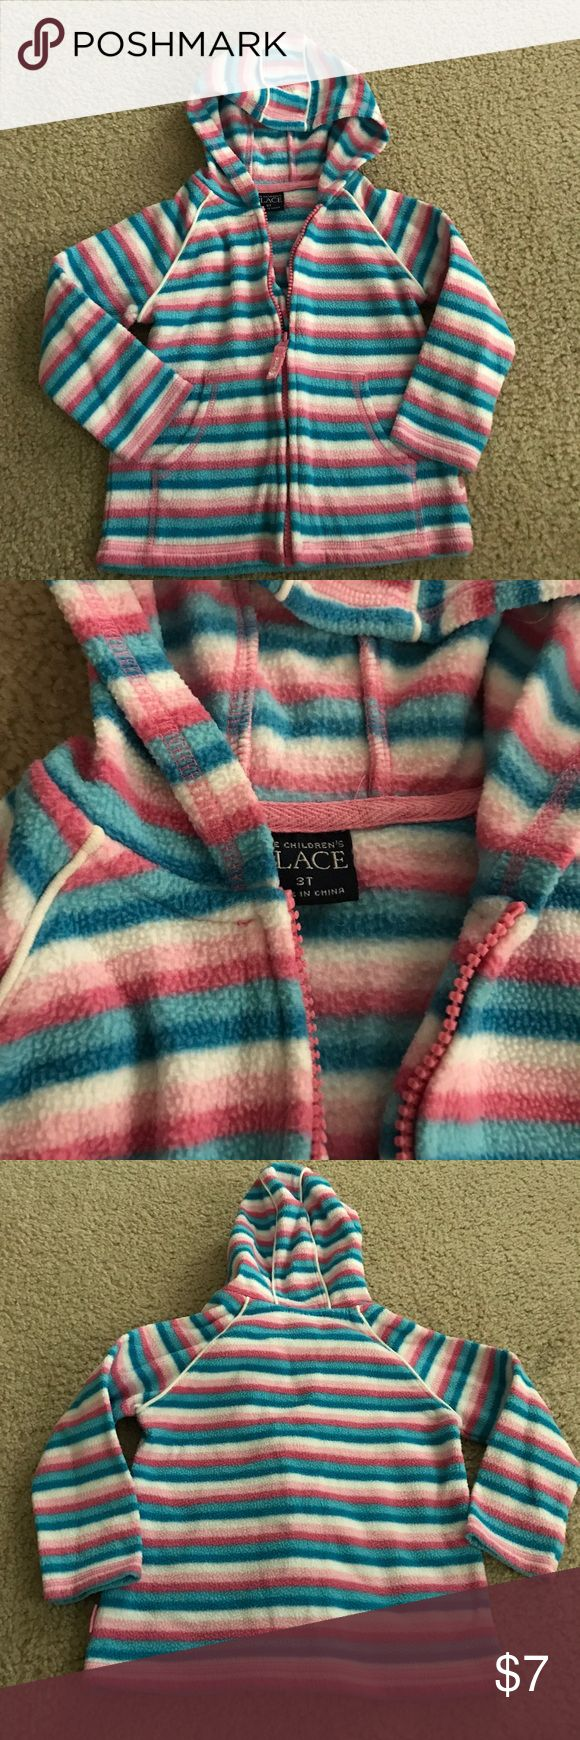 Childrens place girls 3T striped zip up hoodie Children's place girls size 3T pinks/blues/white striped zip up hooded sweat shirt with pockets body:100% polyester trim: 100% cotton Children's Place Shirts & Tops Sweatshirts & Hoodies